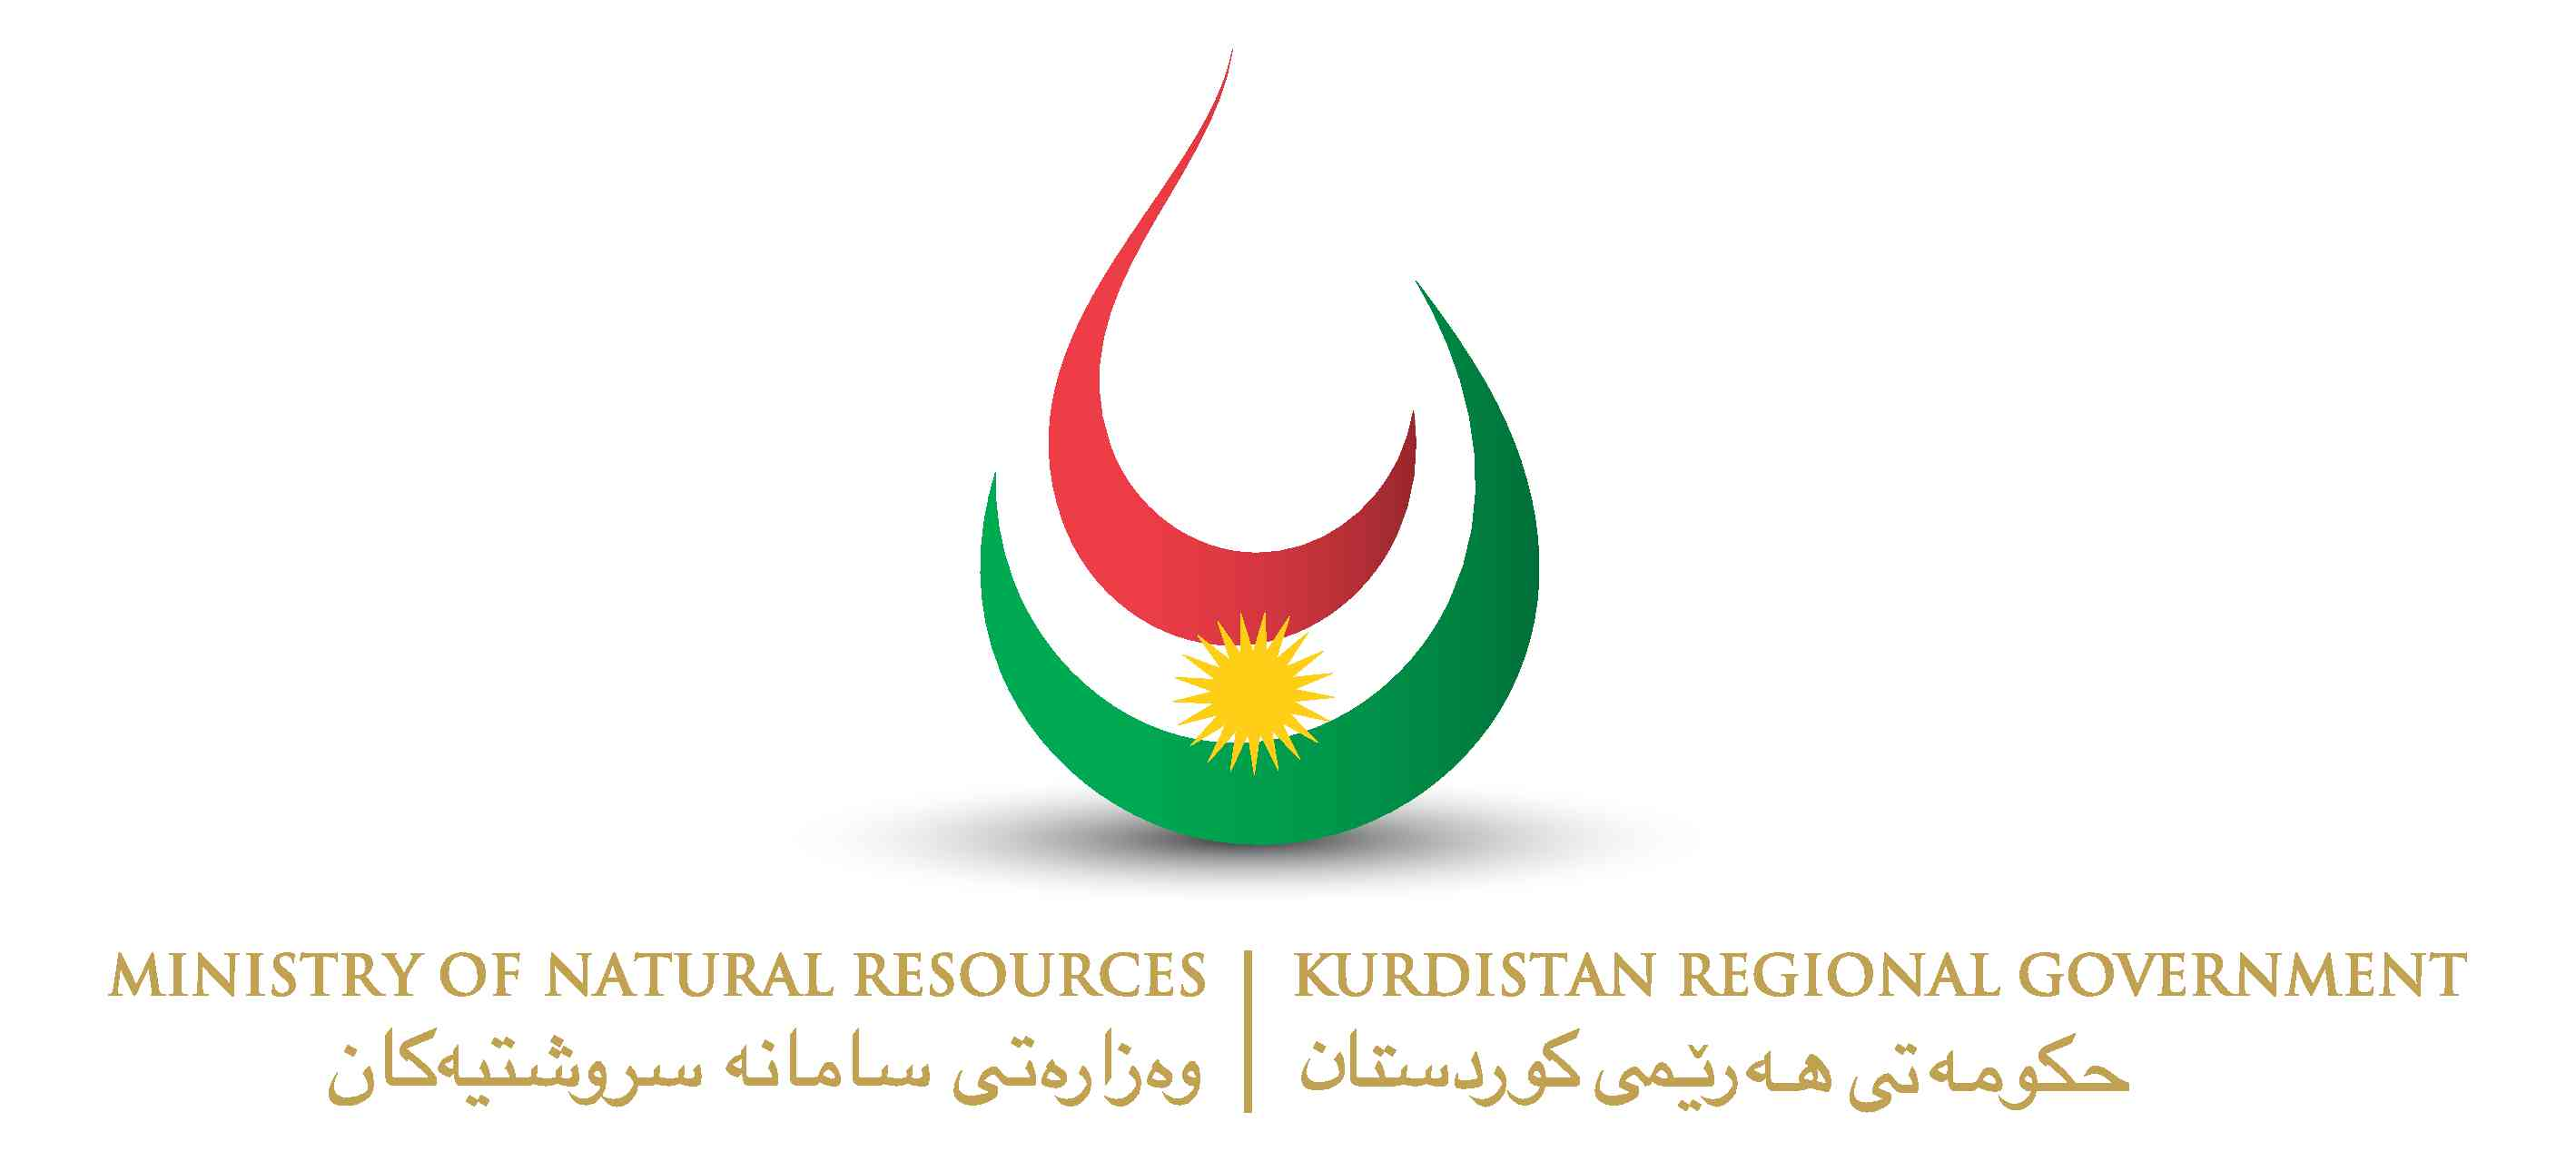 Statement by Ministry of Natural Resources: Setting the record straight on oil export and revenue so that the people of Kurdistan can judge for themselves